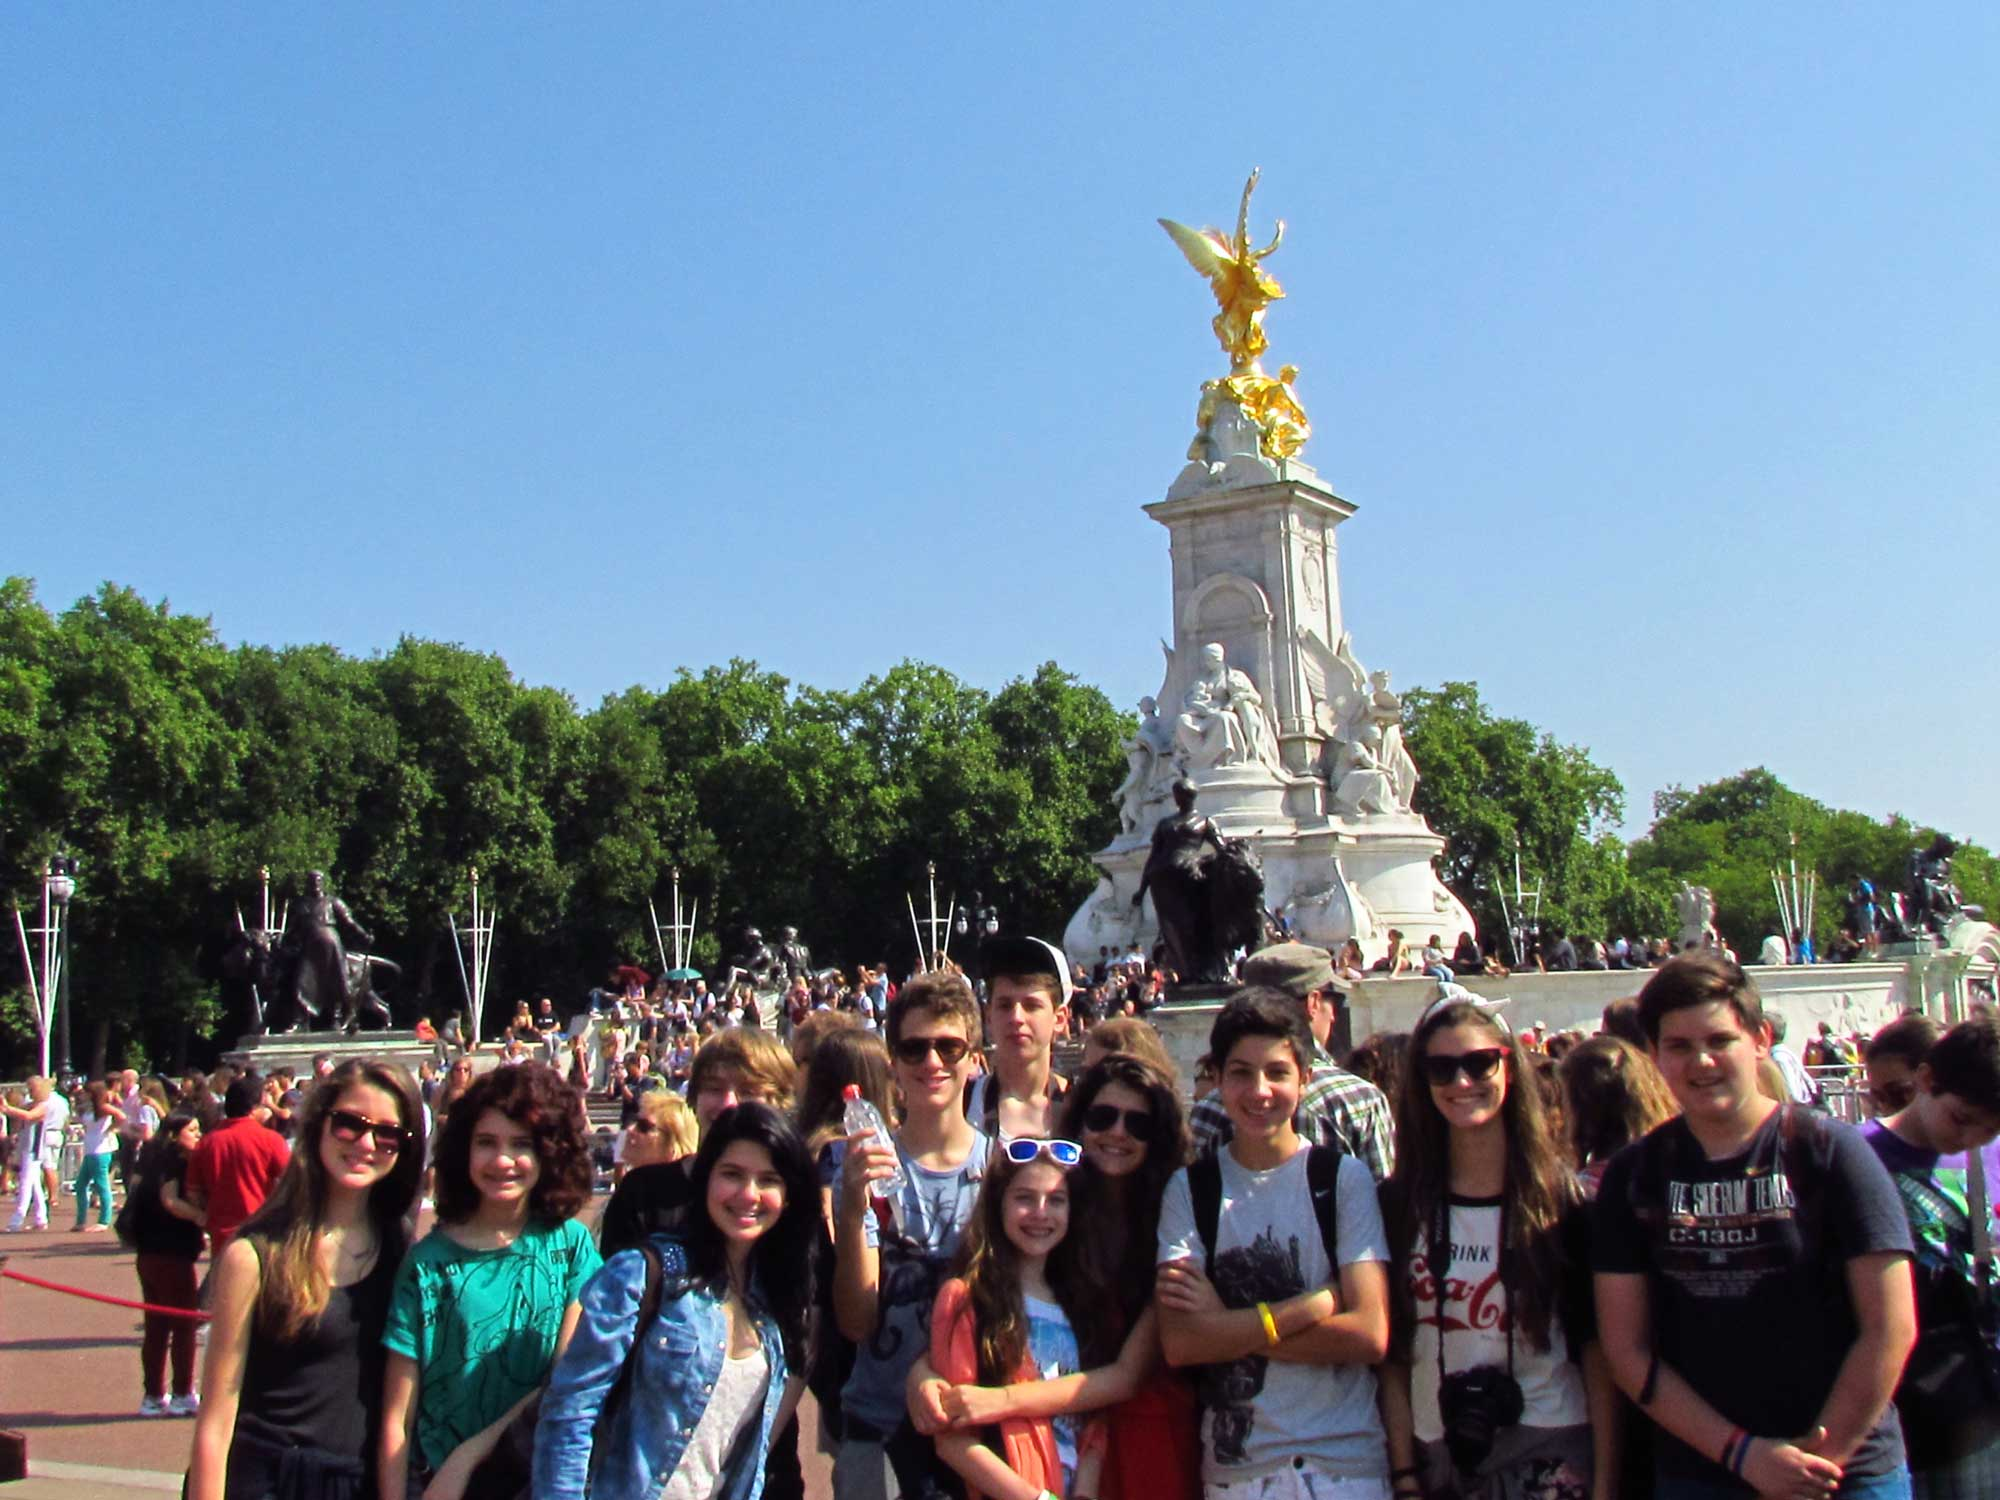 Friends' Full Day Trip To London